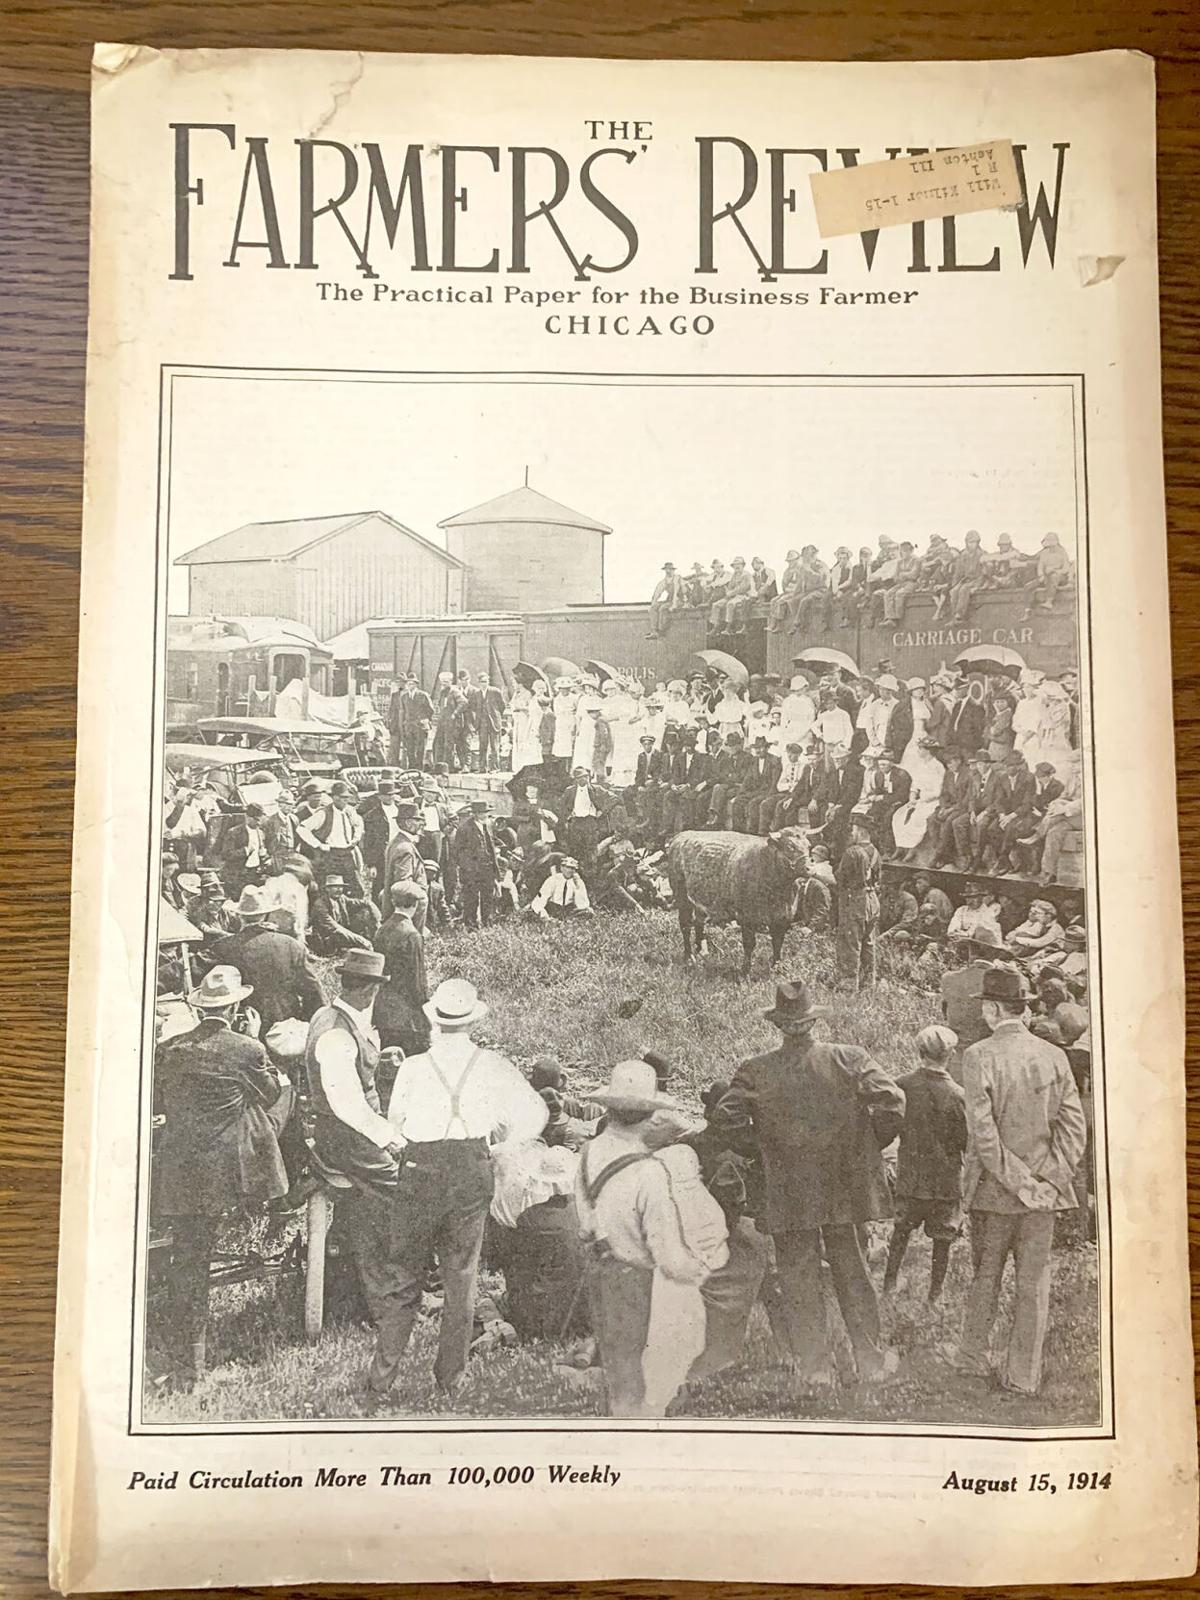 Tales from the past: Farmer uncovers historic ag publications